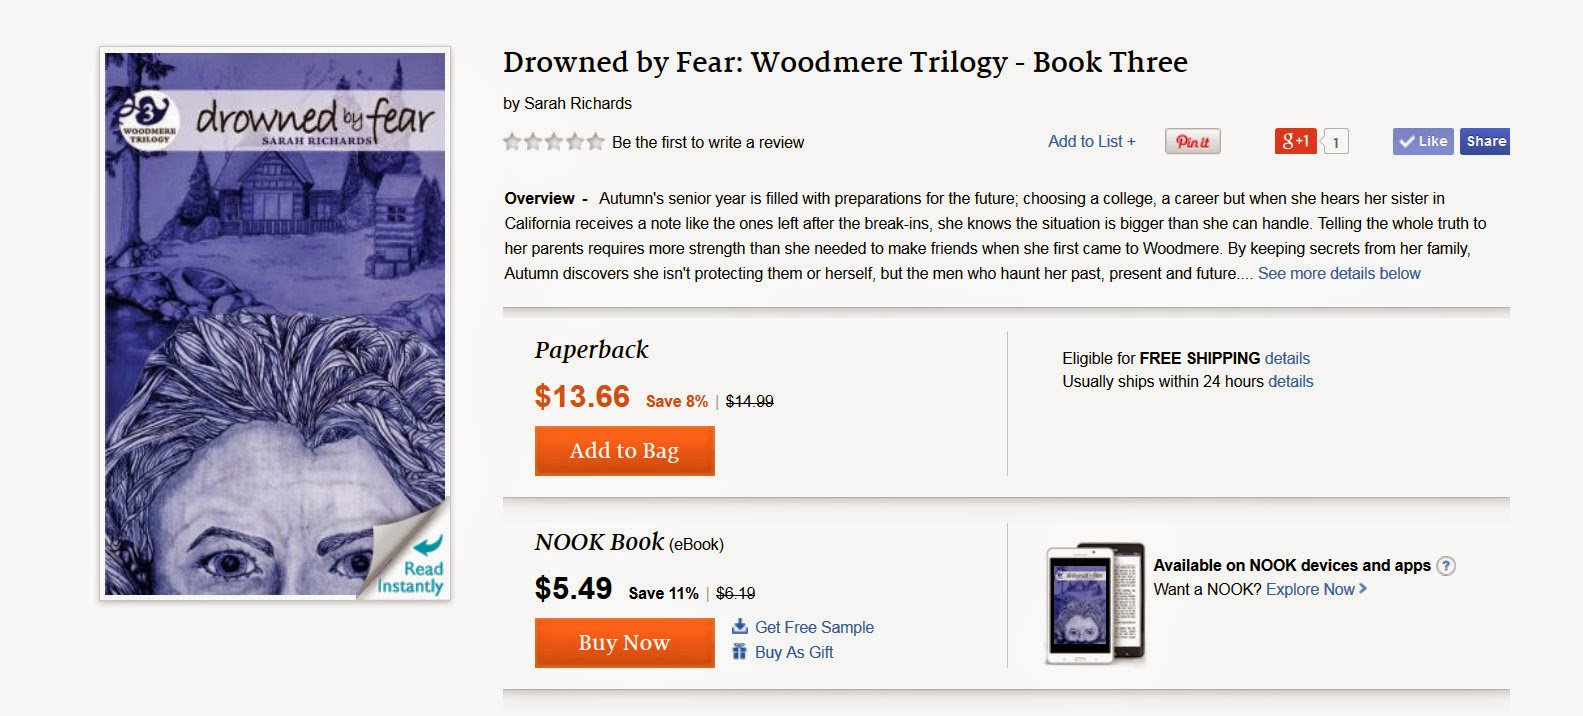 http://www.barnesandnoble.com/w/drowned-by-fear-sarah-richards/1120479076?ean=9781502536488